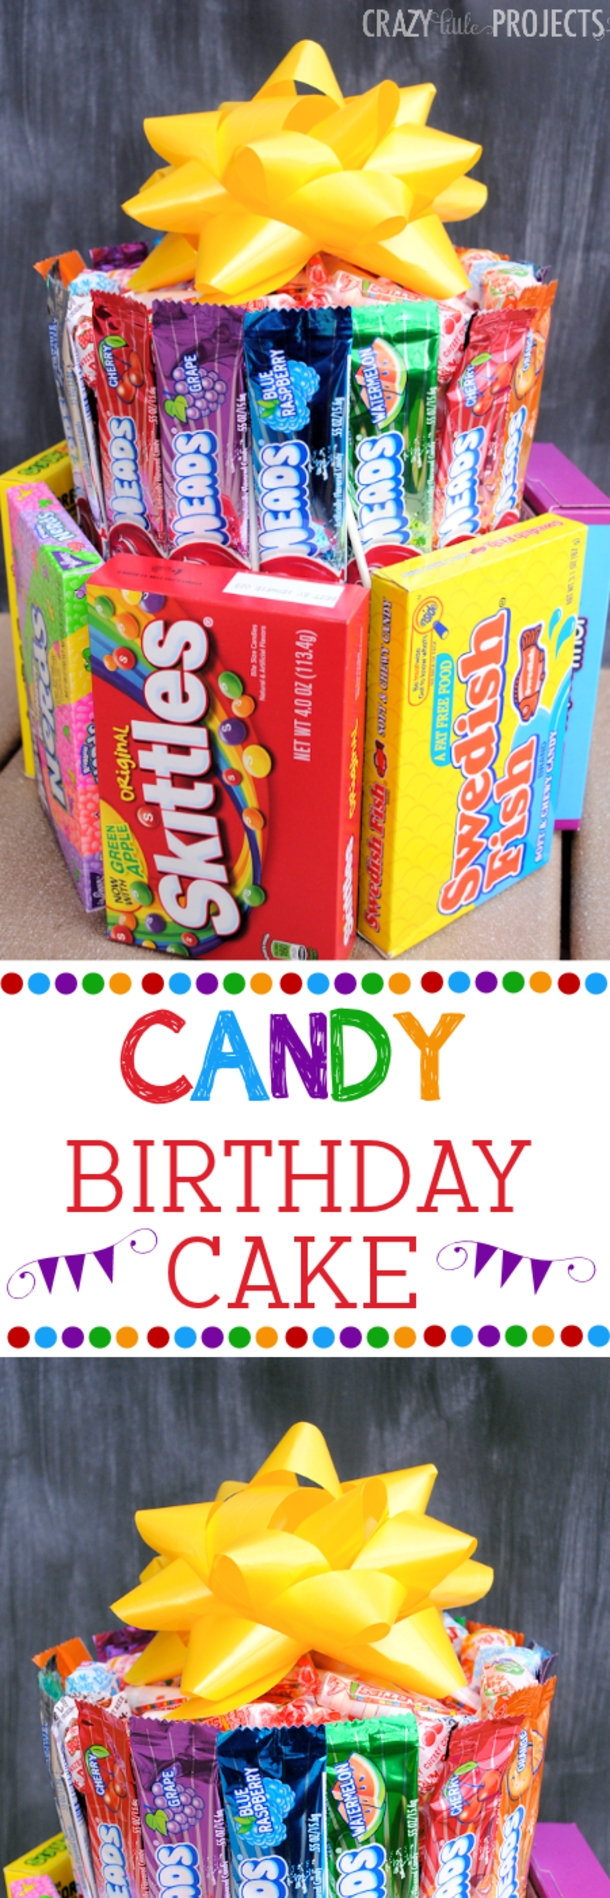 10 Most Recommended Sweet 16 Birthday Present Ideas 2019